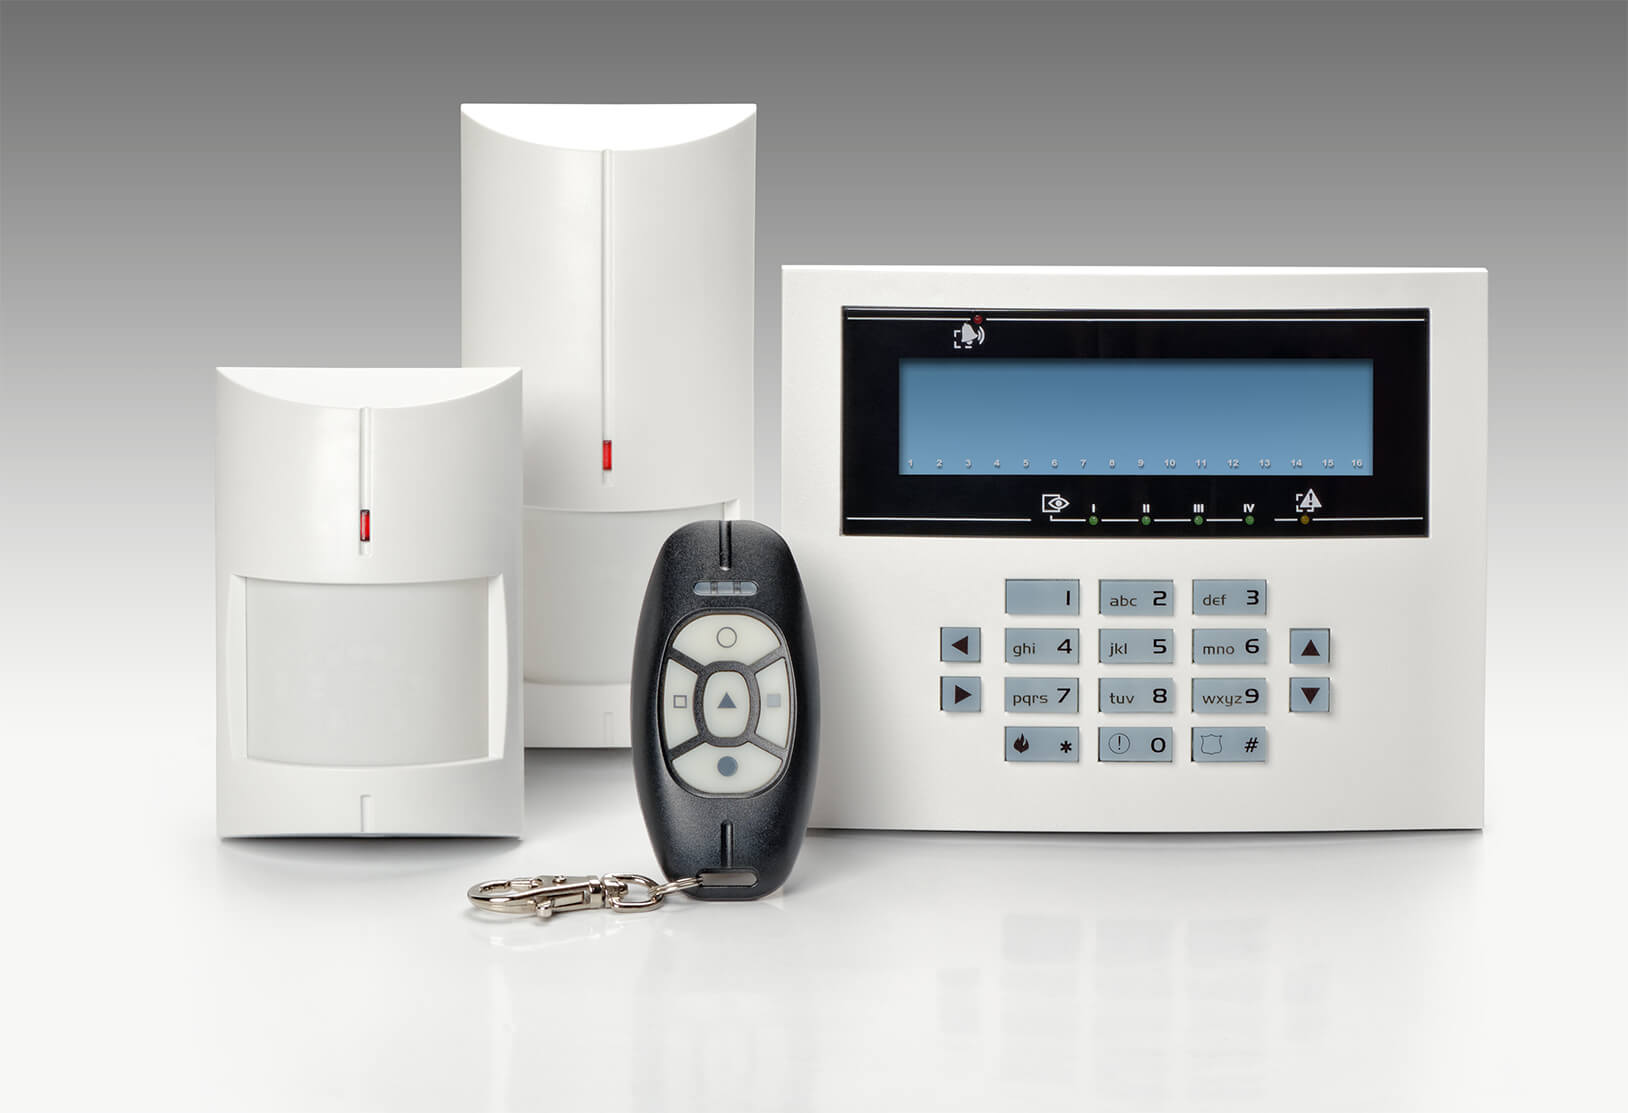 Commercial Burglar Alarms For Business in Homerton E9  - Local Homerton E9 burglar alarm company.Call 02078872244 - Dedicated to Safety & Security. Companies, shops and homes ..